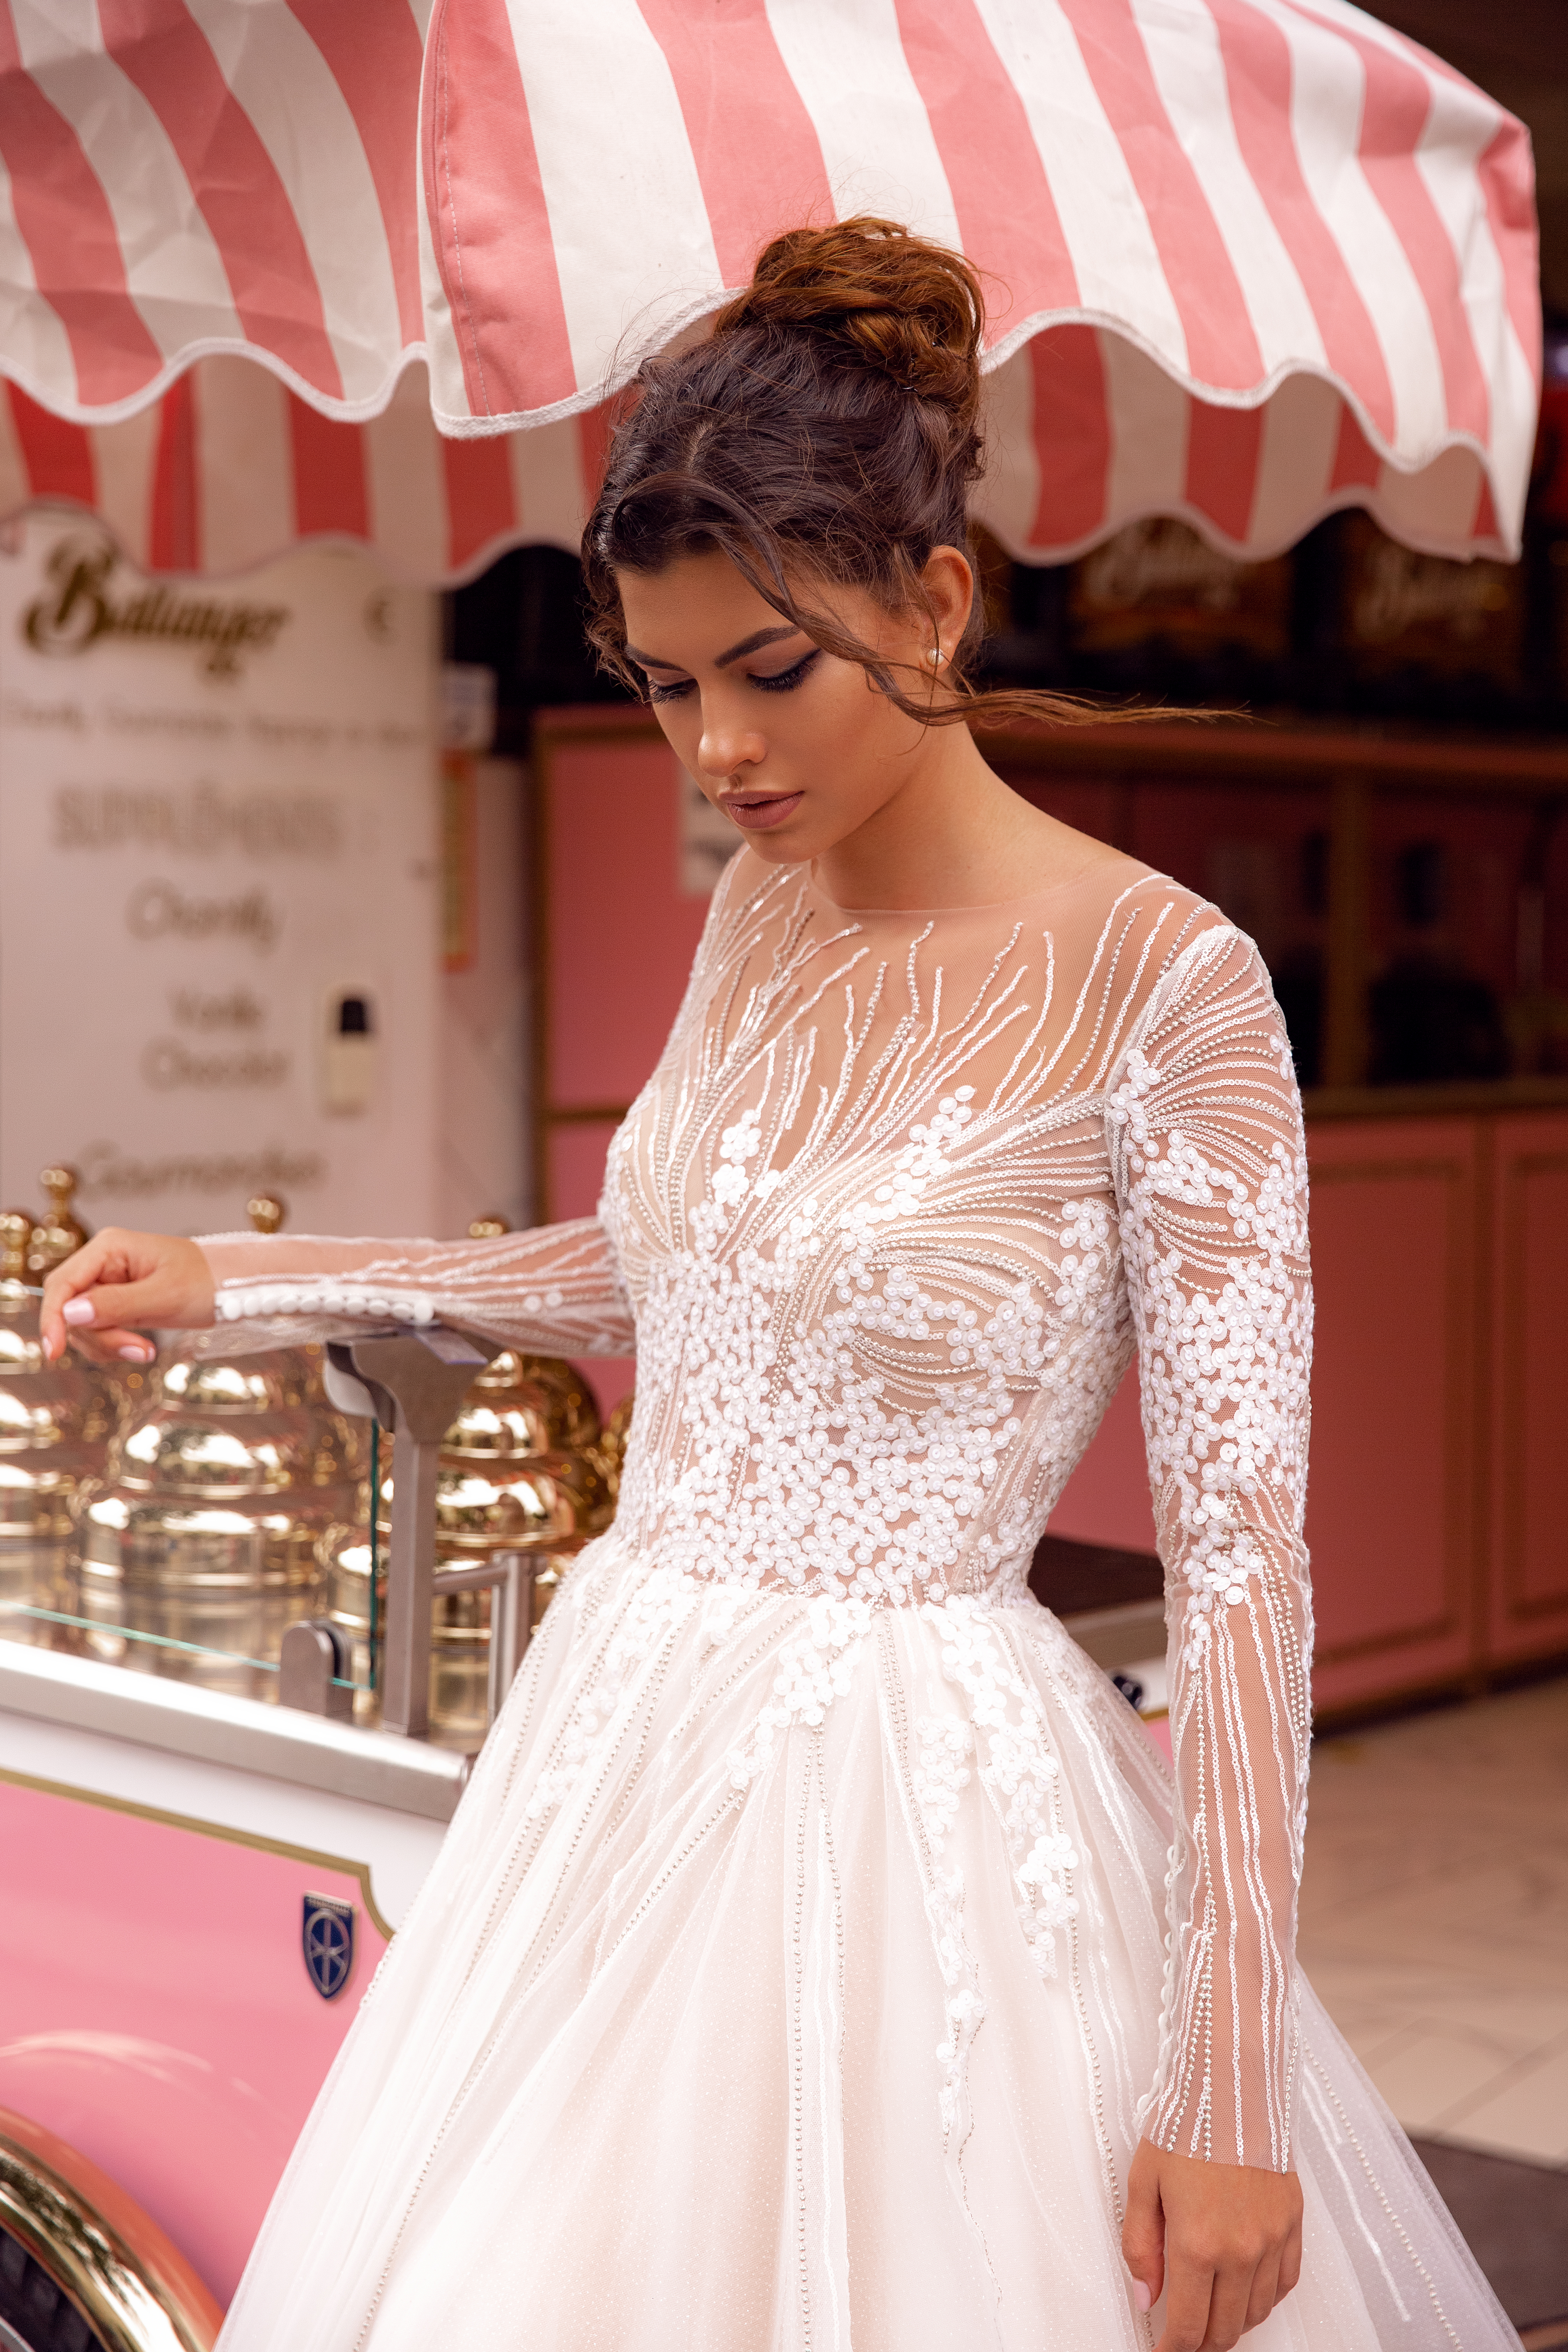 Wedding dresses Fibi Collection  Côte d'Azur  Silhouette  A Line  Color  Blush  Ivory  Neckline  Jewel  Sleeves  Long Sleeves  Fitted  Train  With train